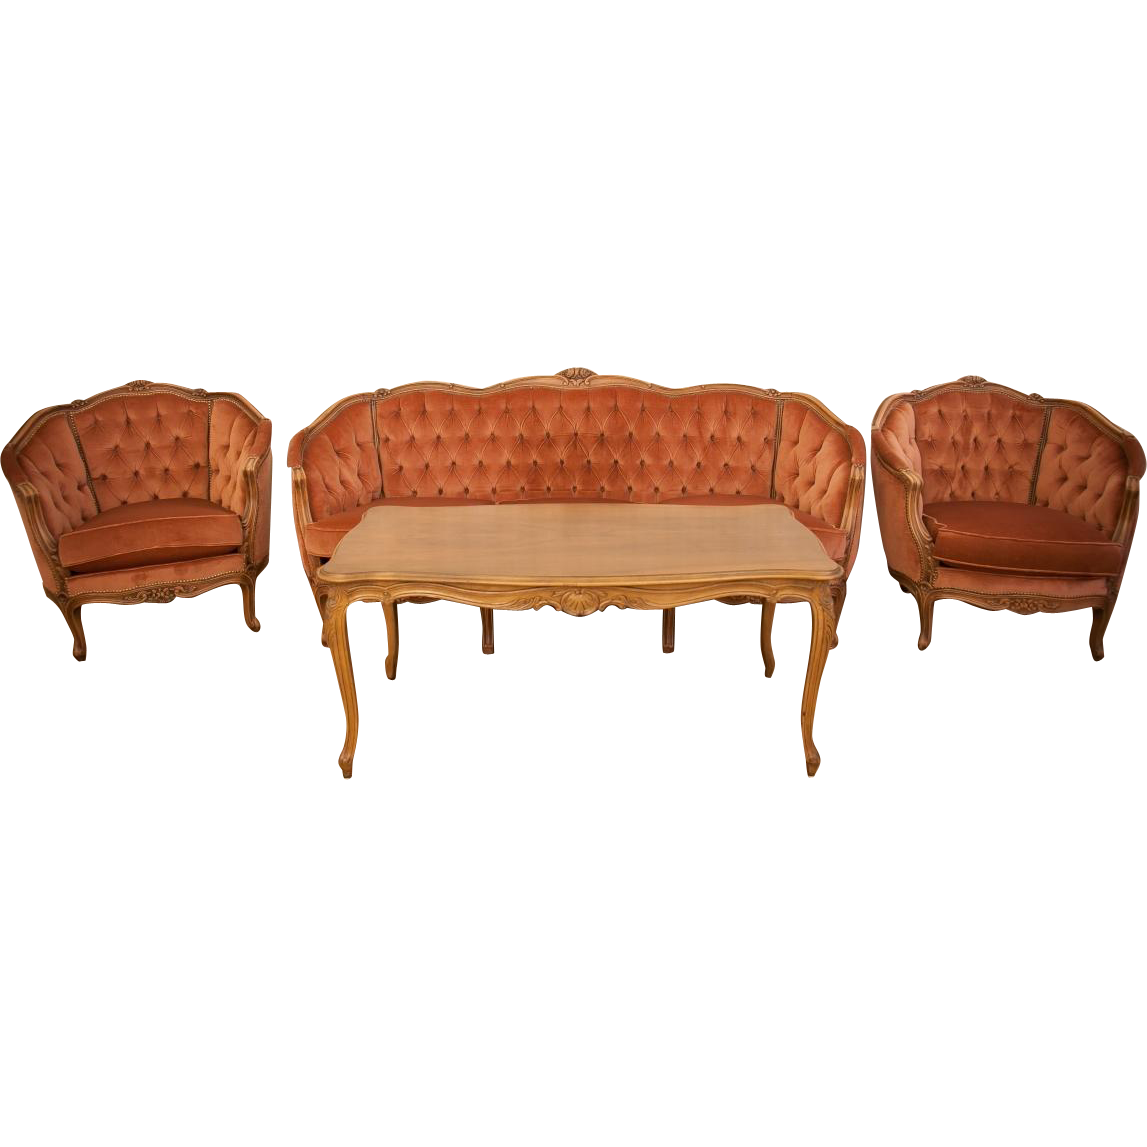 louis xv living room set from 2nd half of 20th century from antique